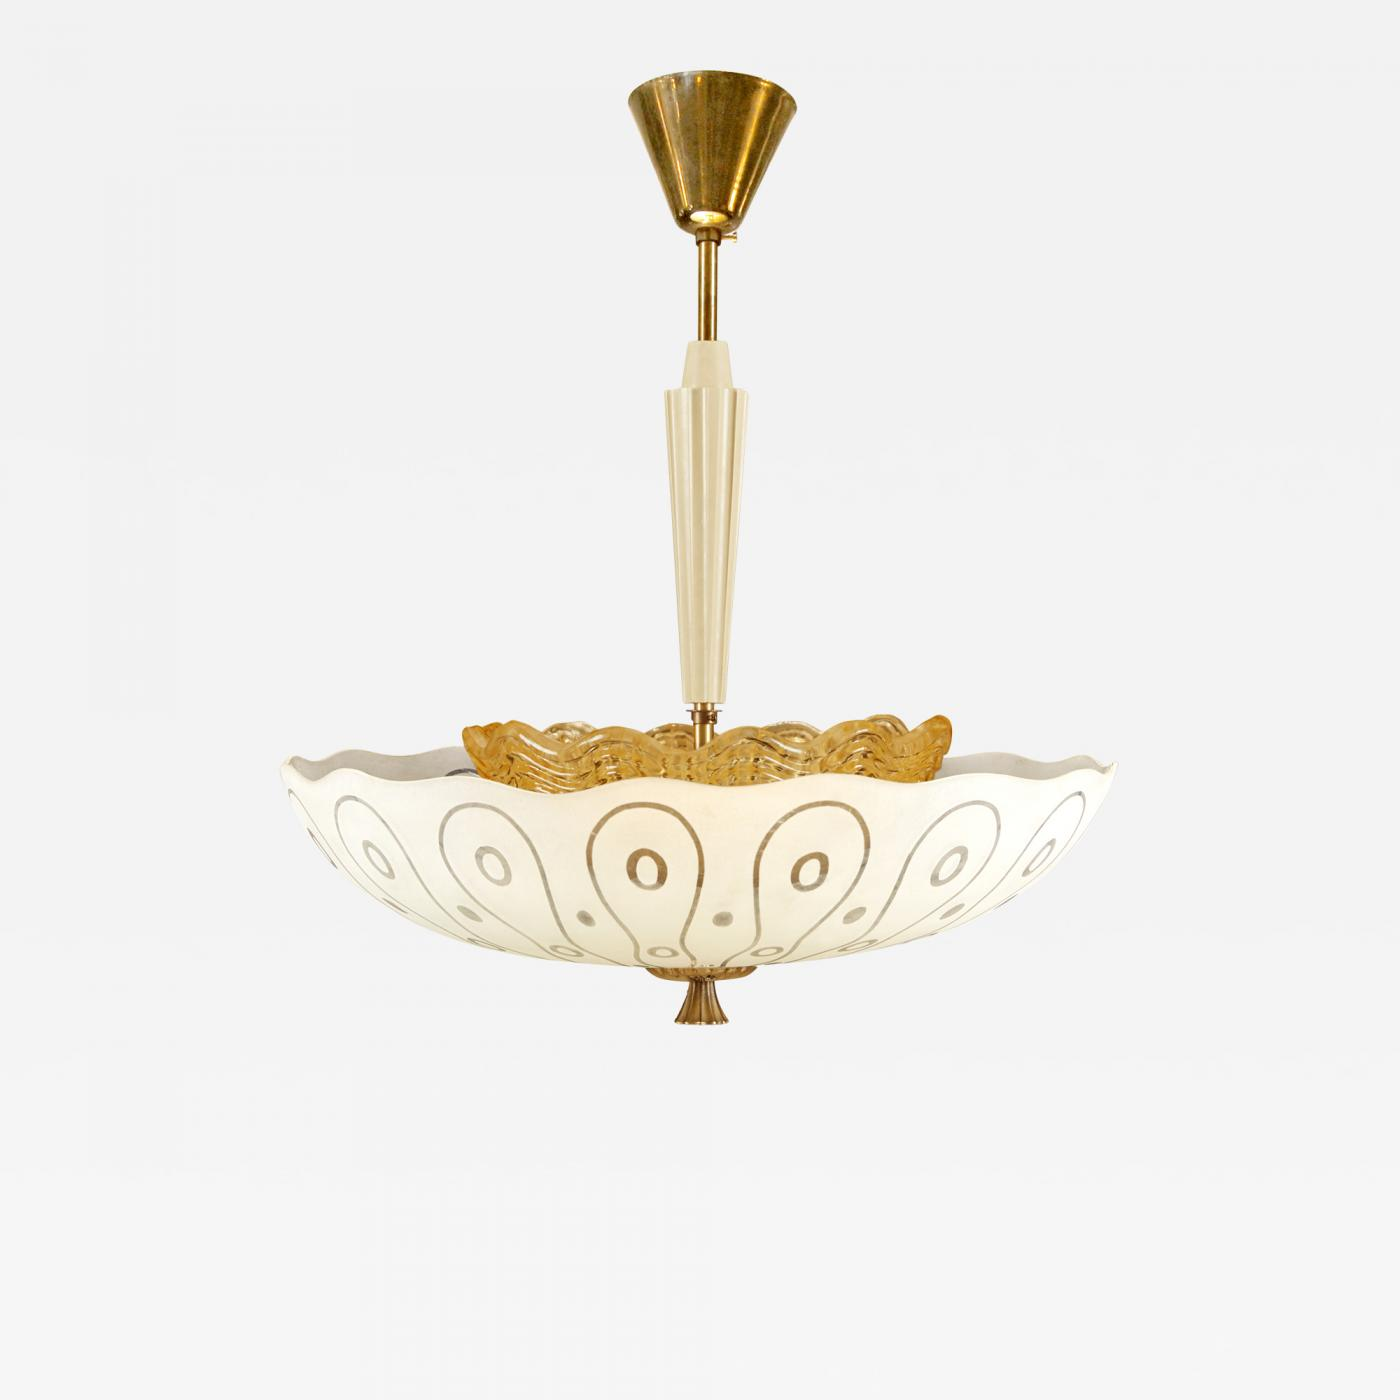 Carl fagerlund stylized etched glass chandelier by carl fagerlund listings furniture lighting chandeliers and pendants carl fagerlund stylized etched glass mozeypictures Image collections